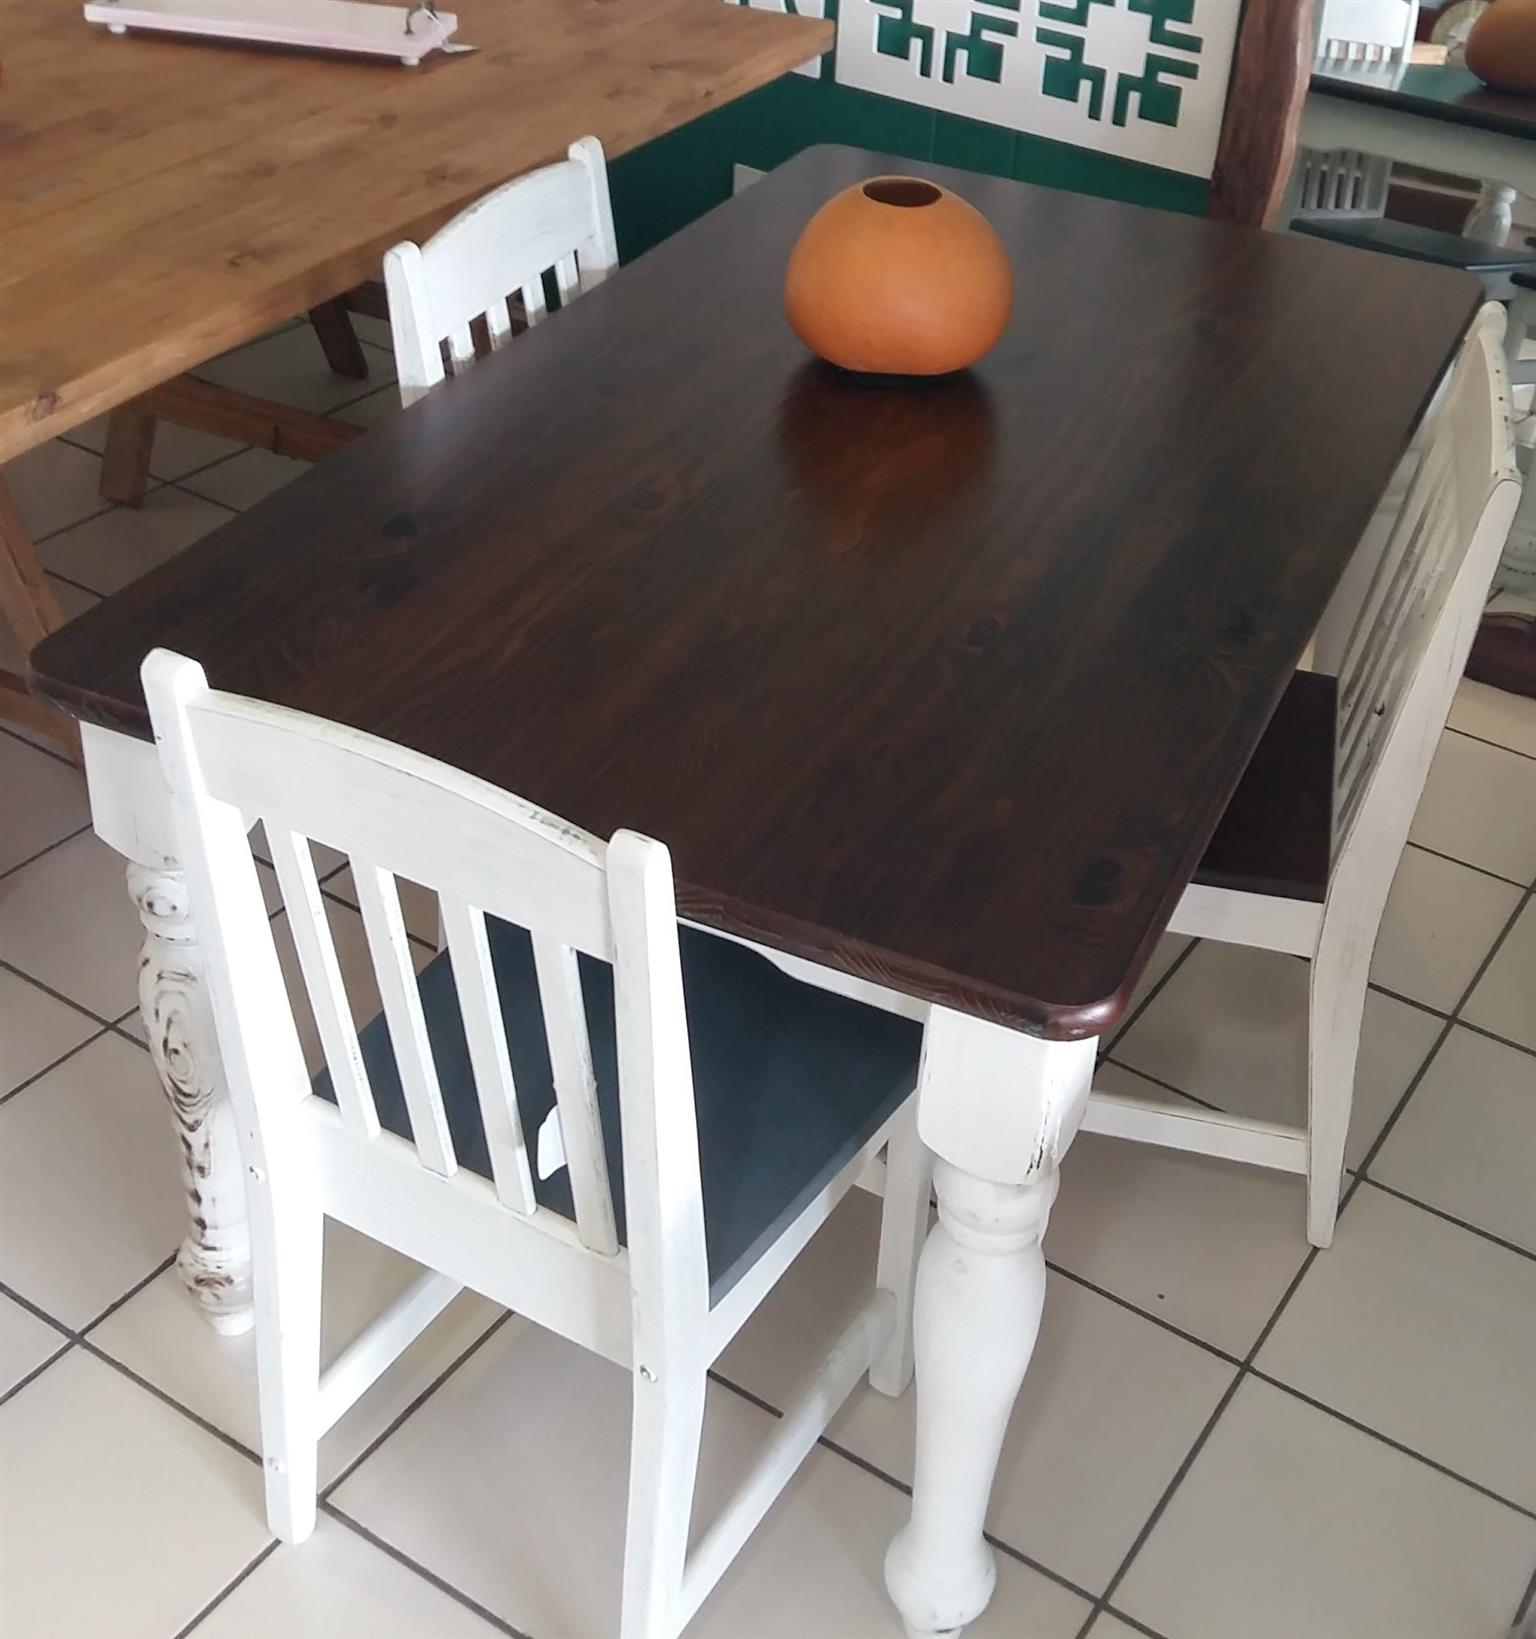 1500 x 900 Pine Dining Room Table - Van Ouds